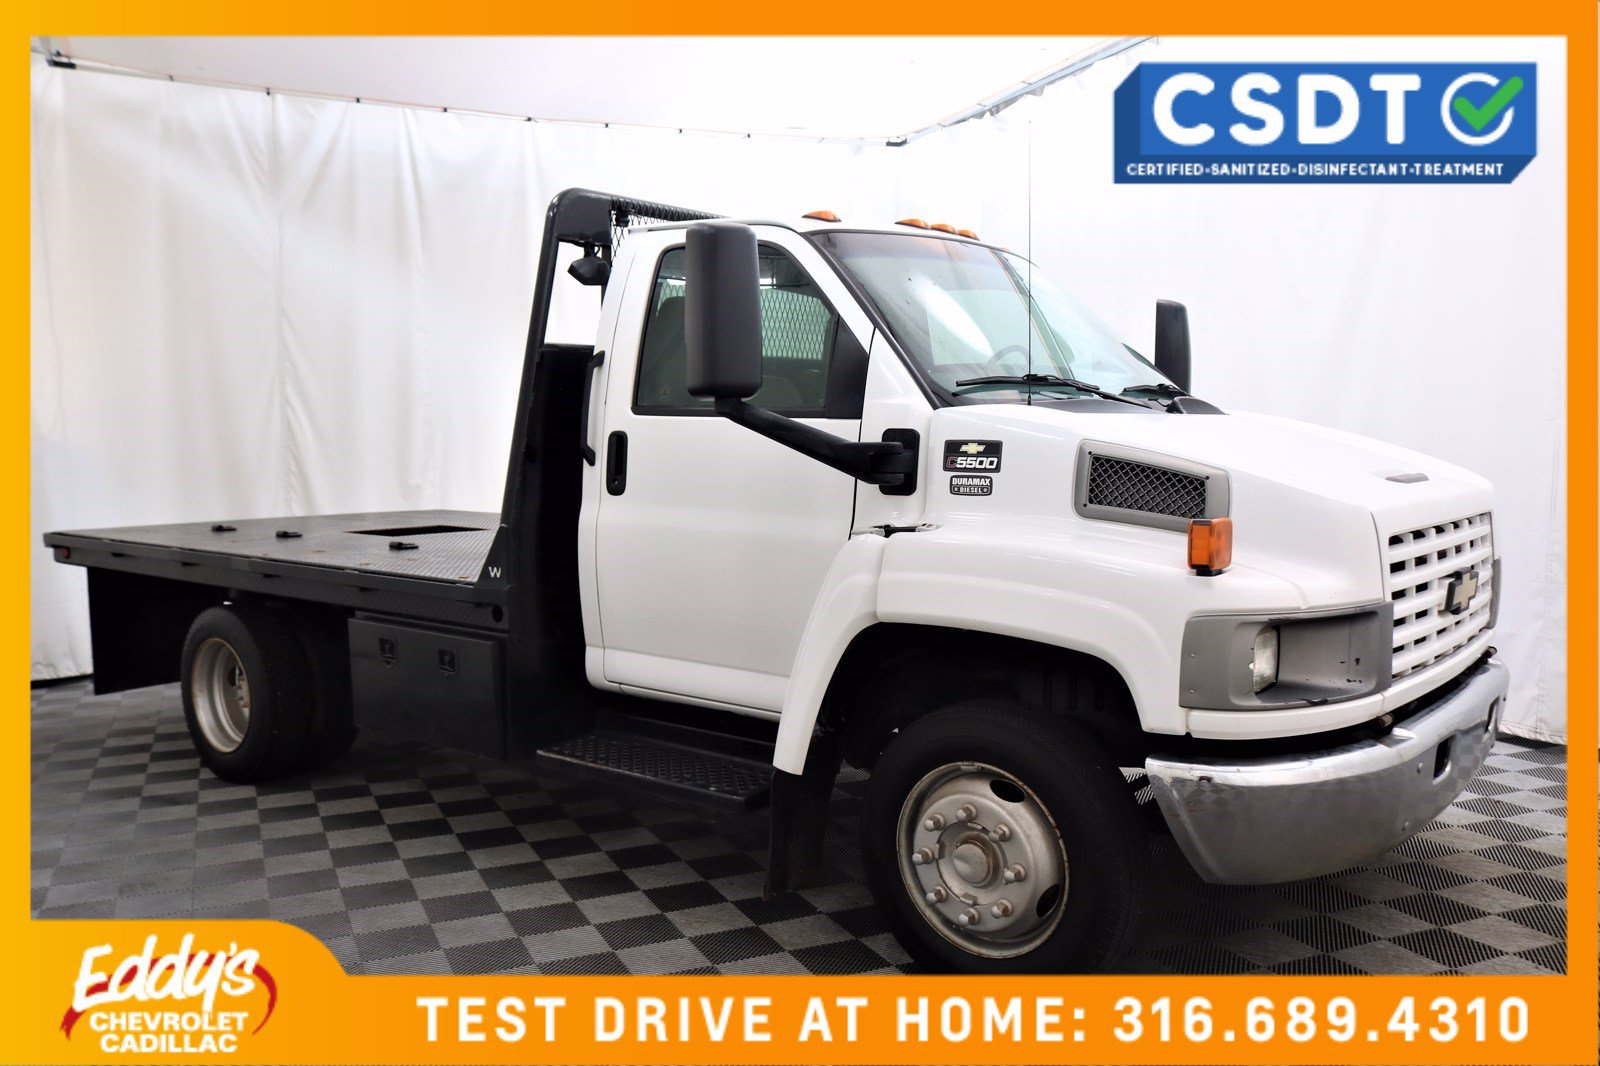 Pre-Owned 2007 Chevrolet CC5500 Flat-bed